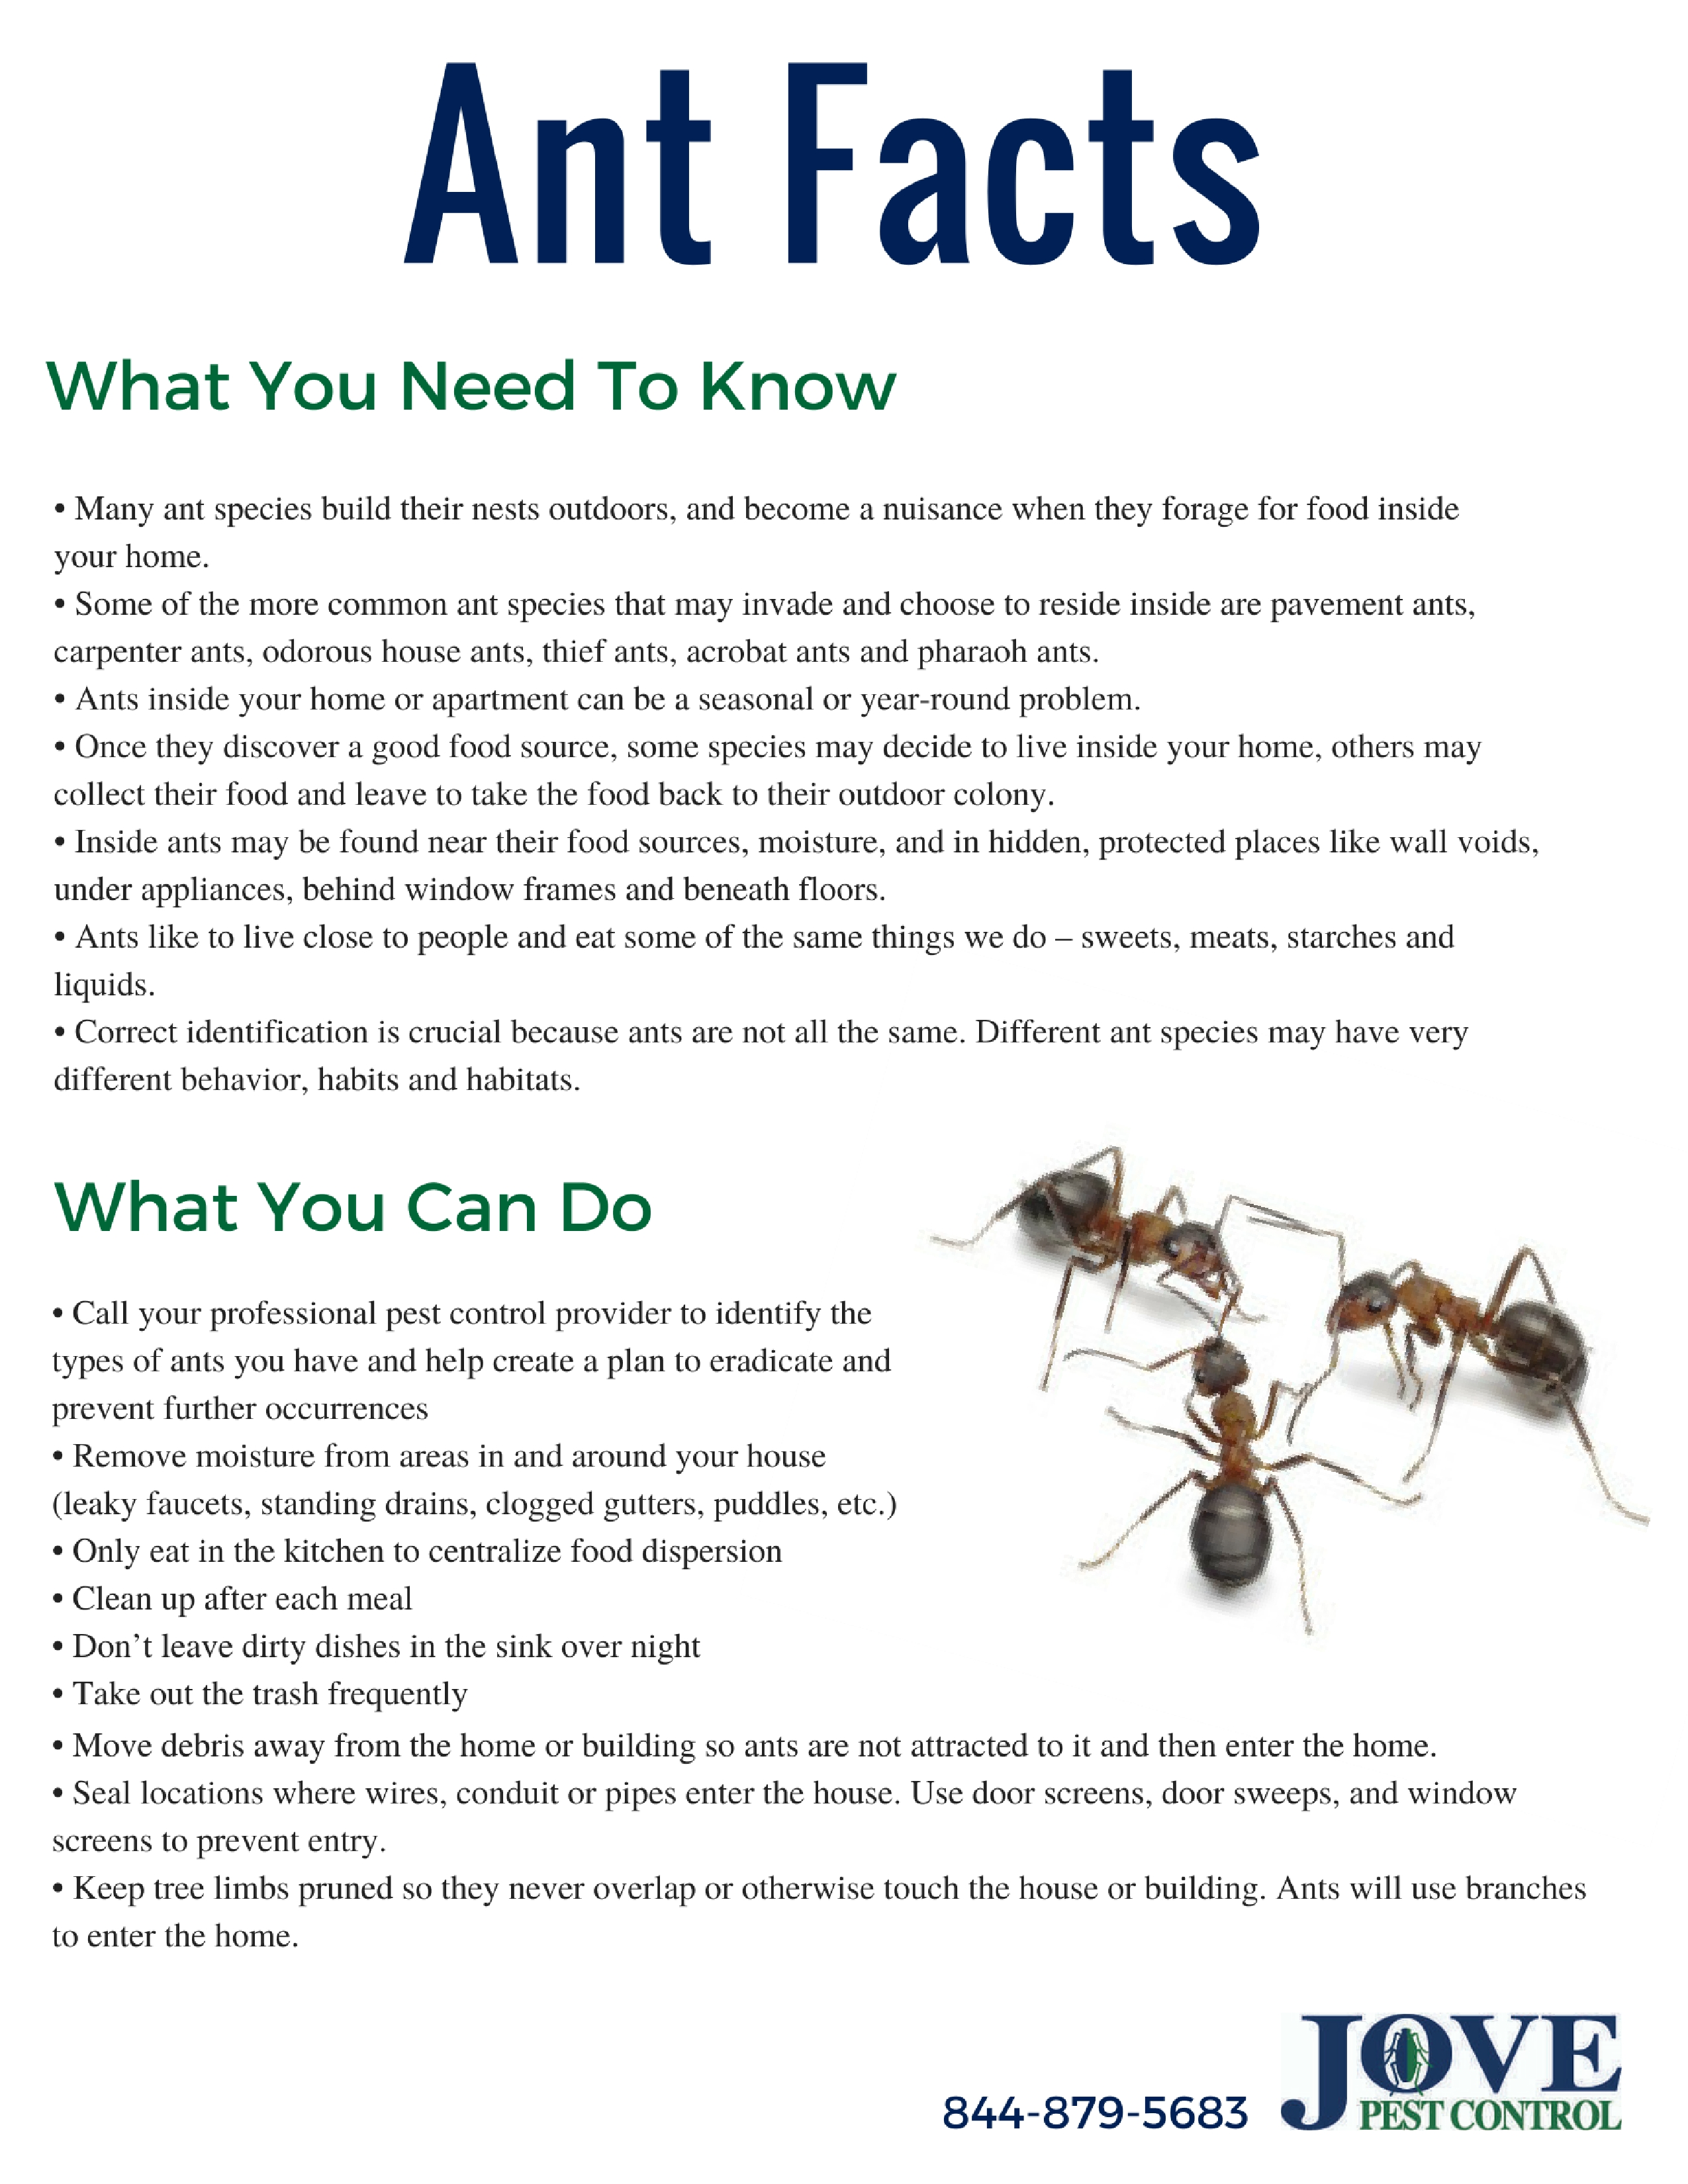 Ant Facts & Prevention